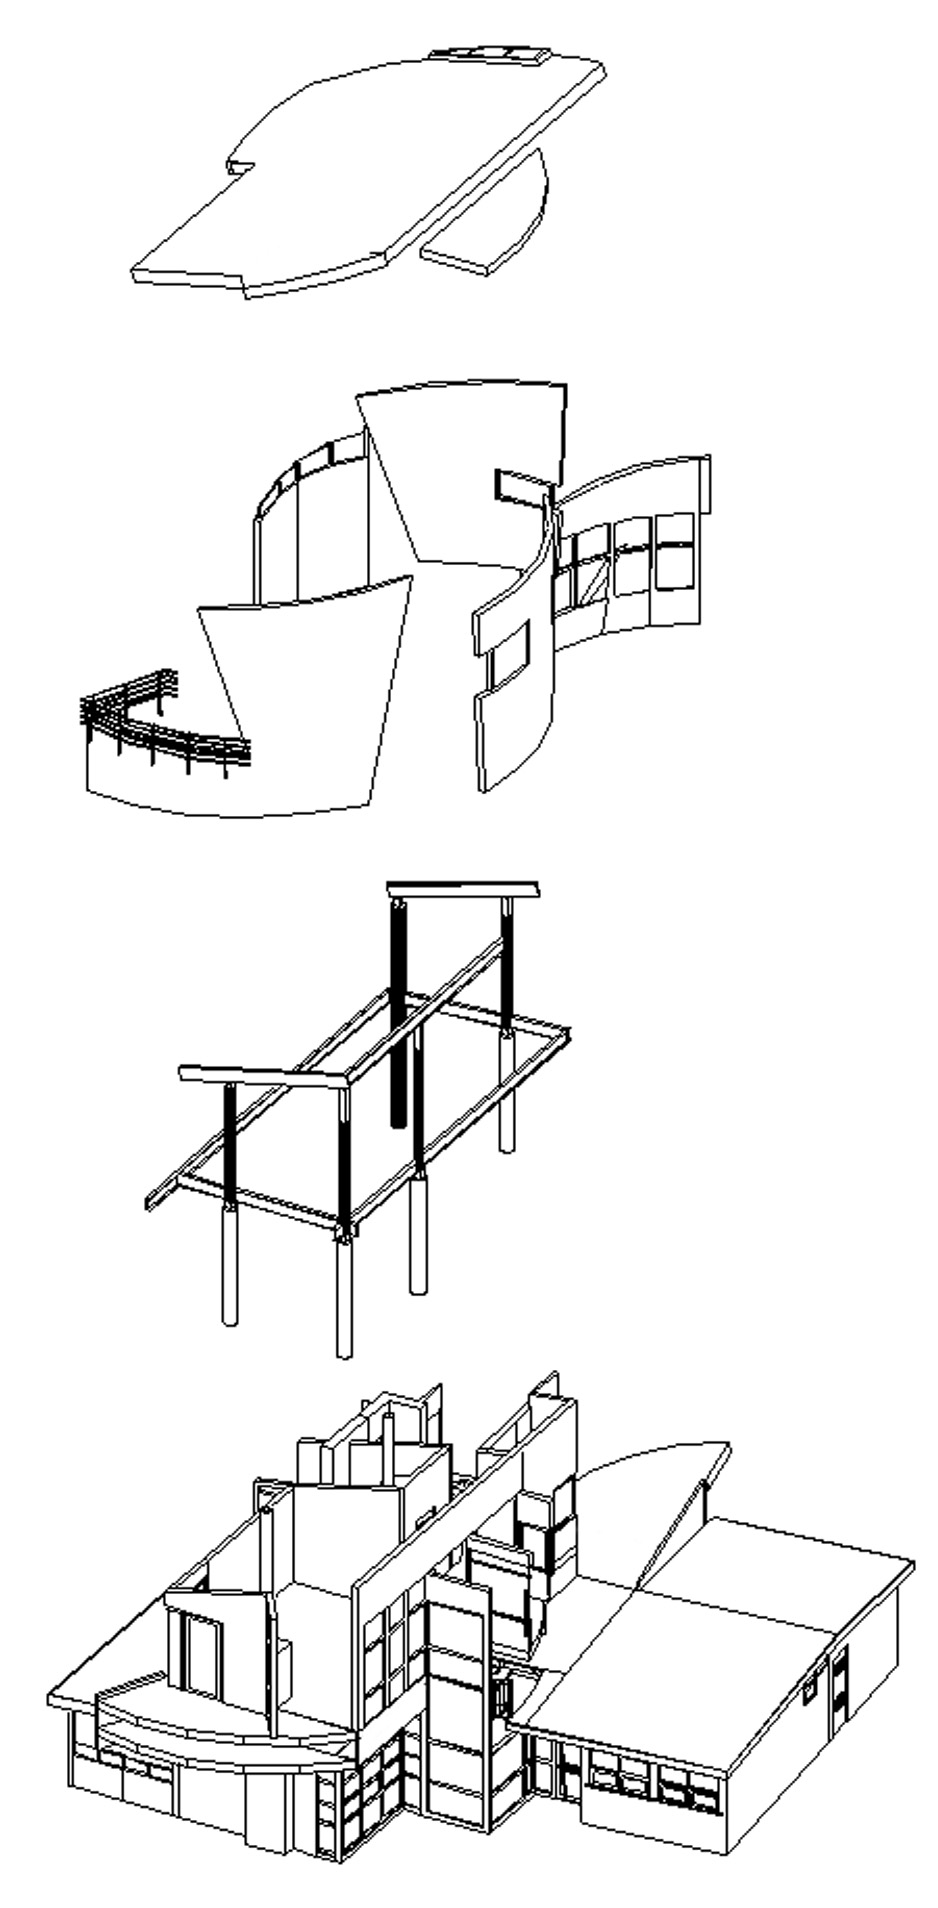 medium resolution of diagram of the essential architectural components of the house